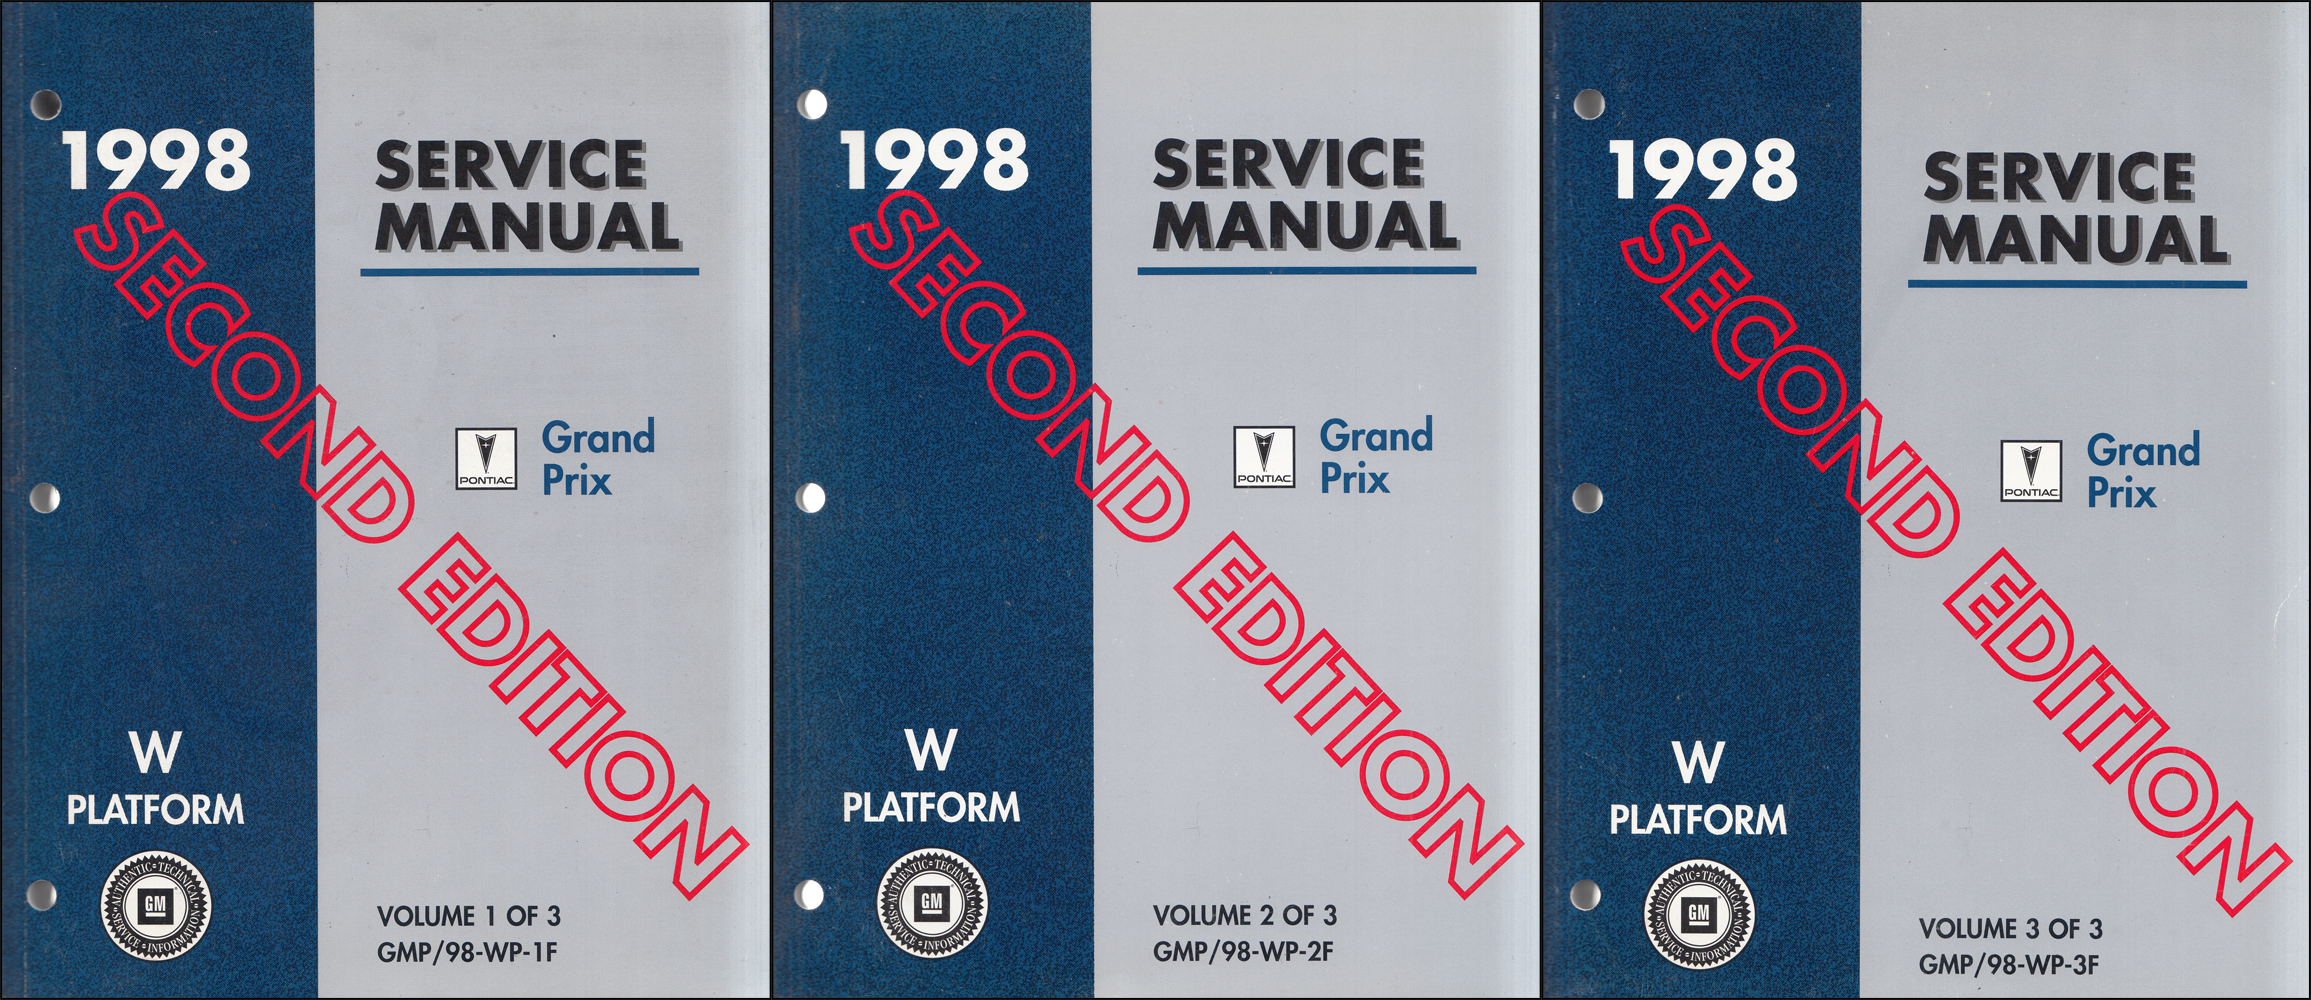 1998 Pontiac Grand Prix Repair Manual Original Second Ed. 3 Volume Set